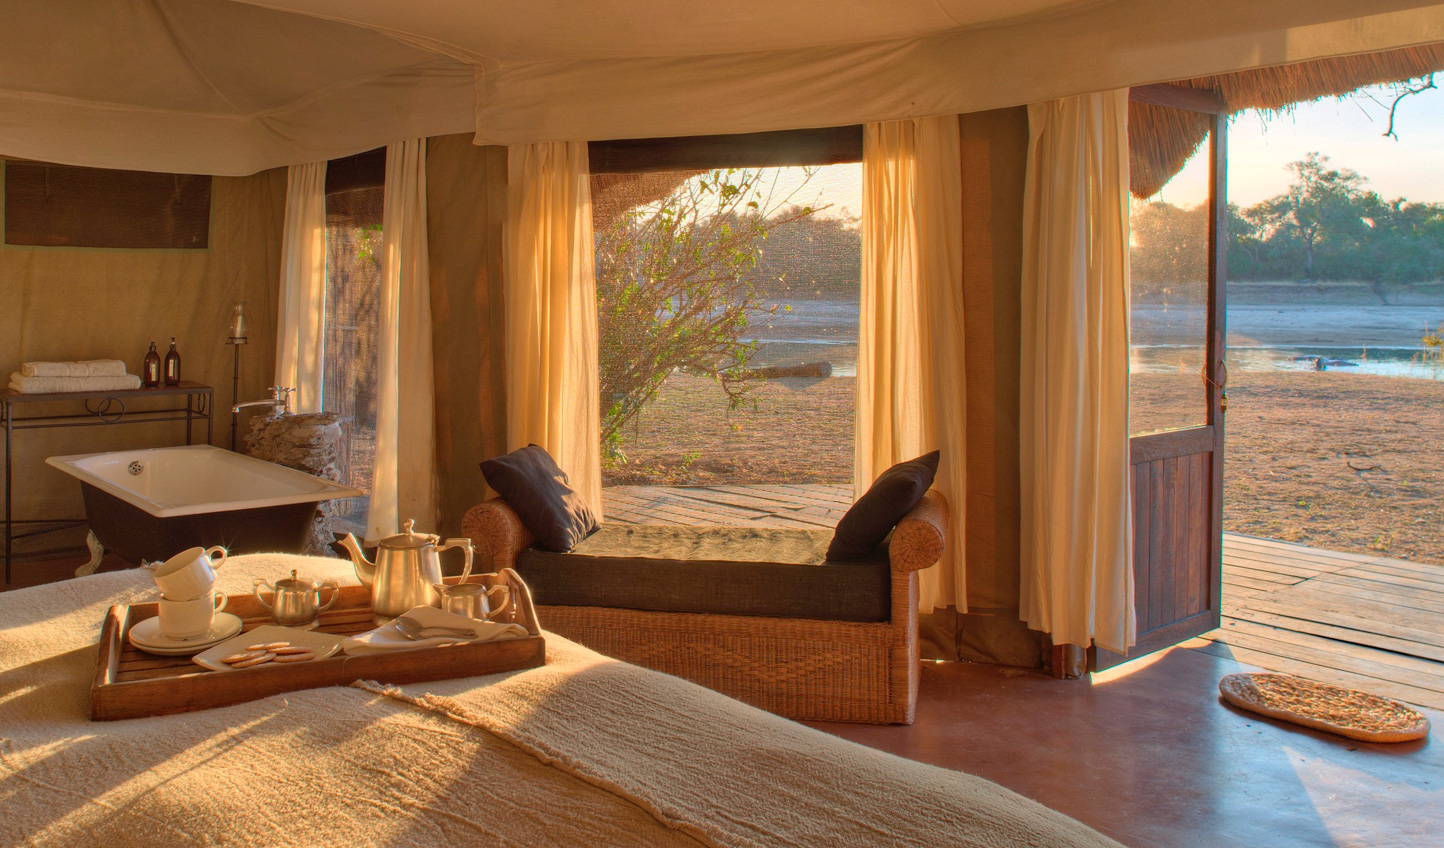 Step out of your room right into the South Luangwa National Park